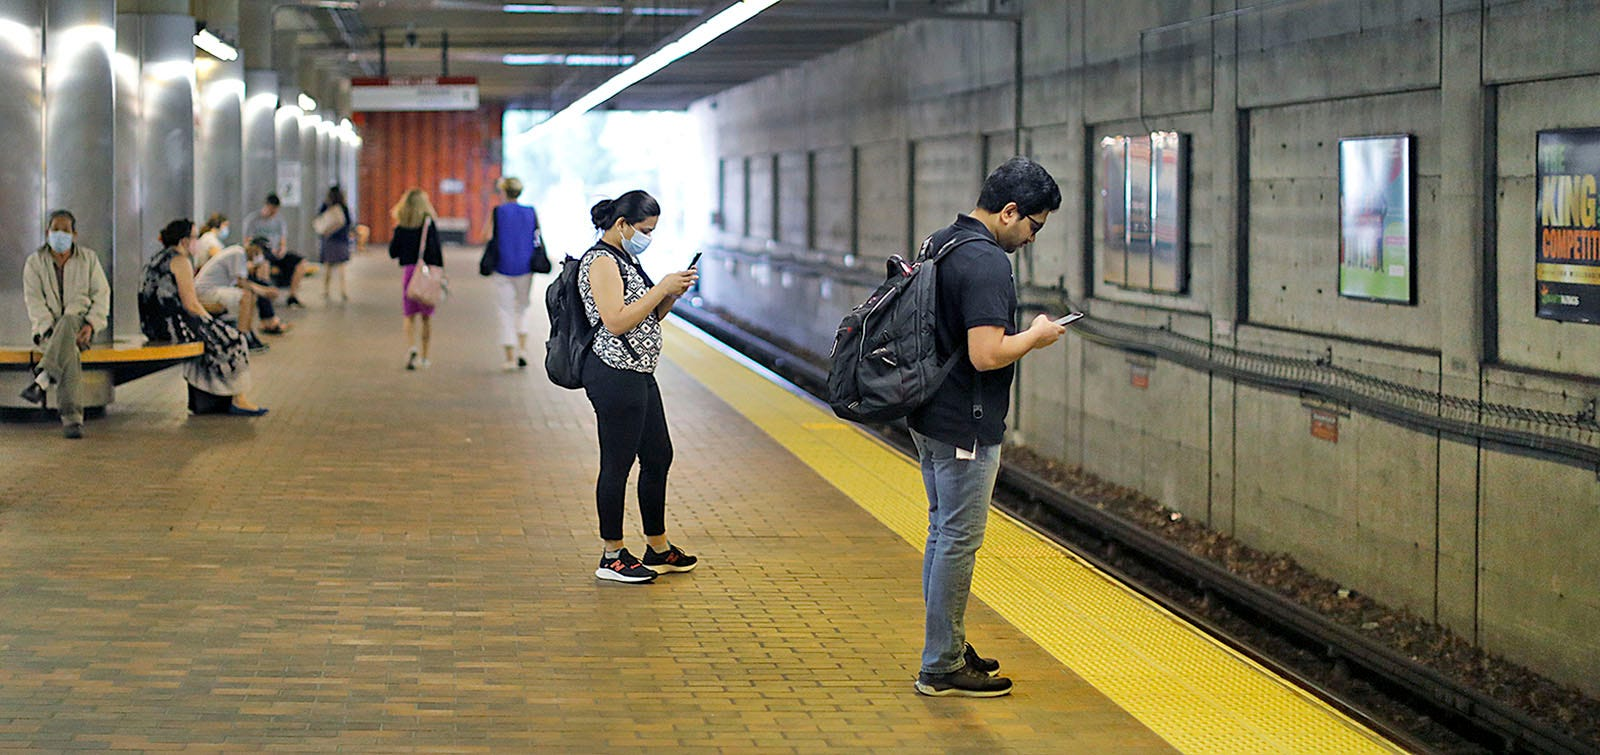 Inbound commuters wait for a train in Quincy Center on Tuesday, July 27, 2021. The South Shore extension of the Red Line turns 50 this year.